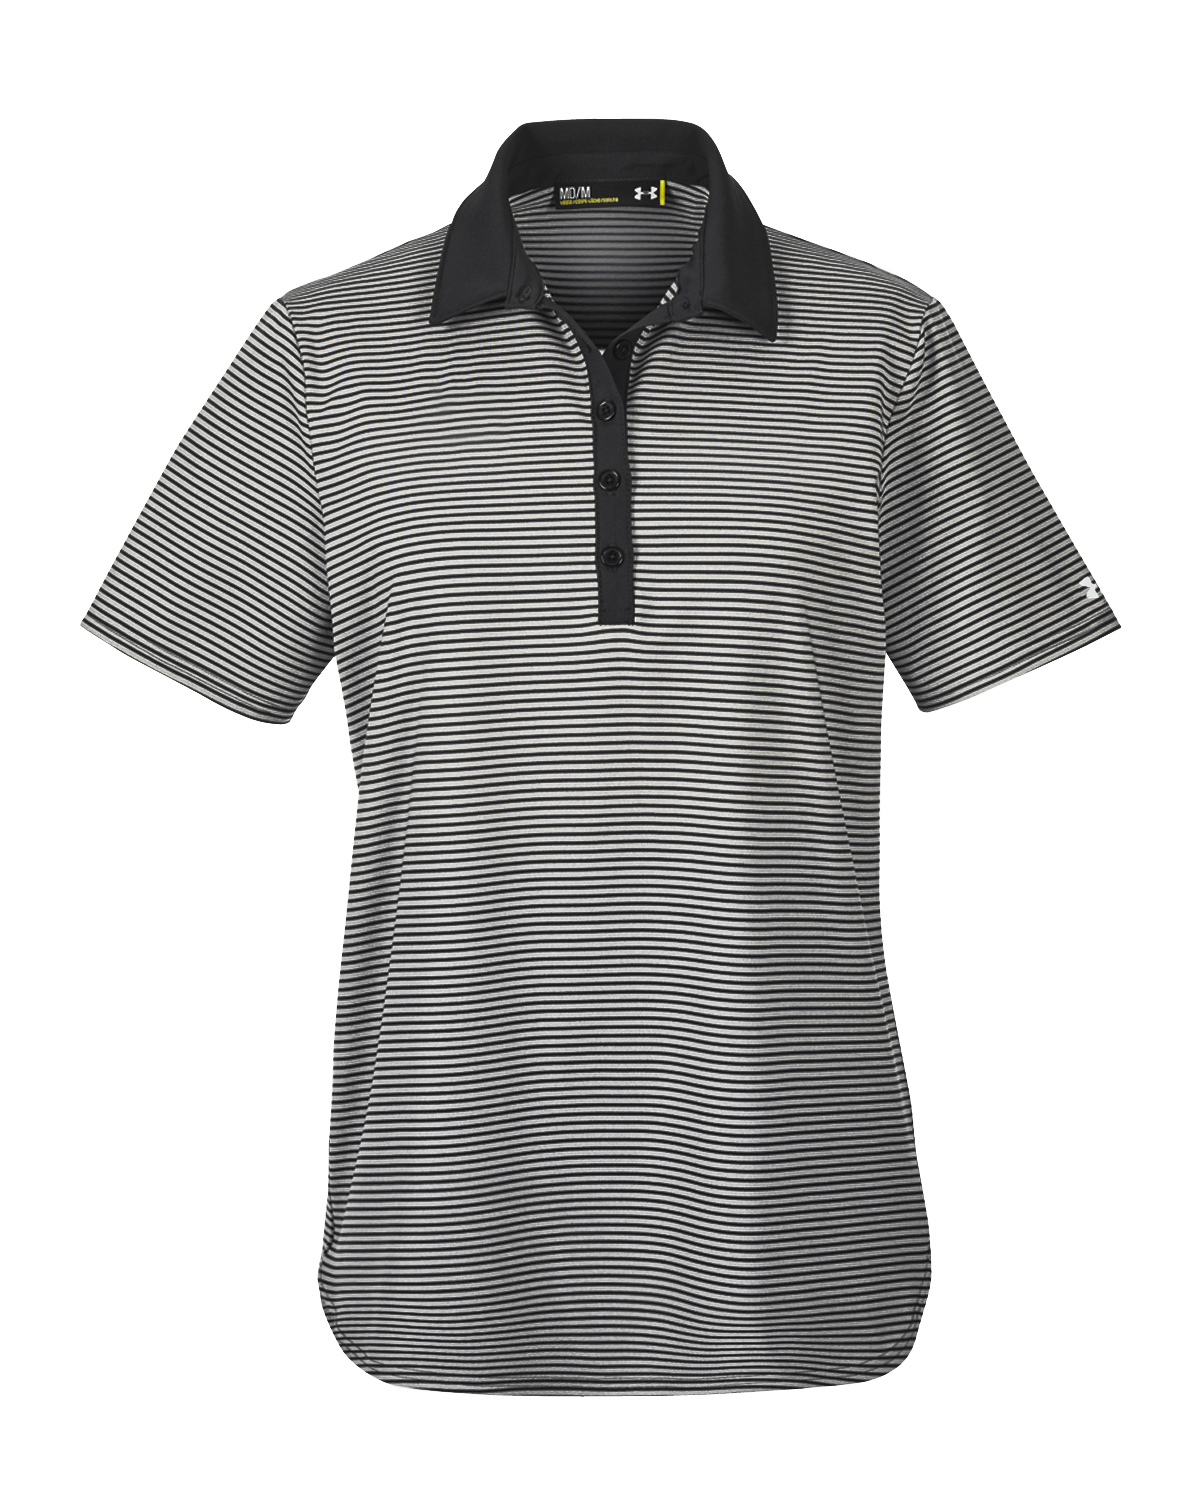 Under Armour 1283944 - Ladies' Playoff Stripe Polo